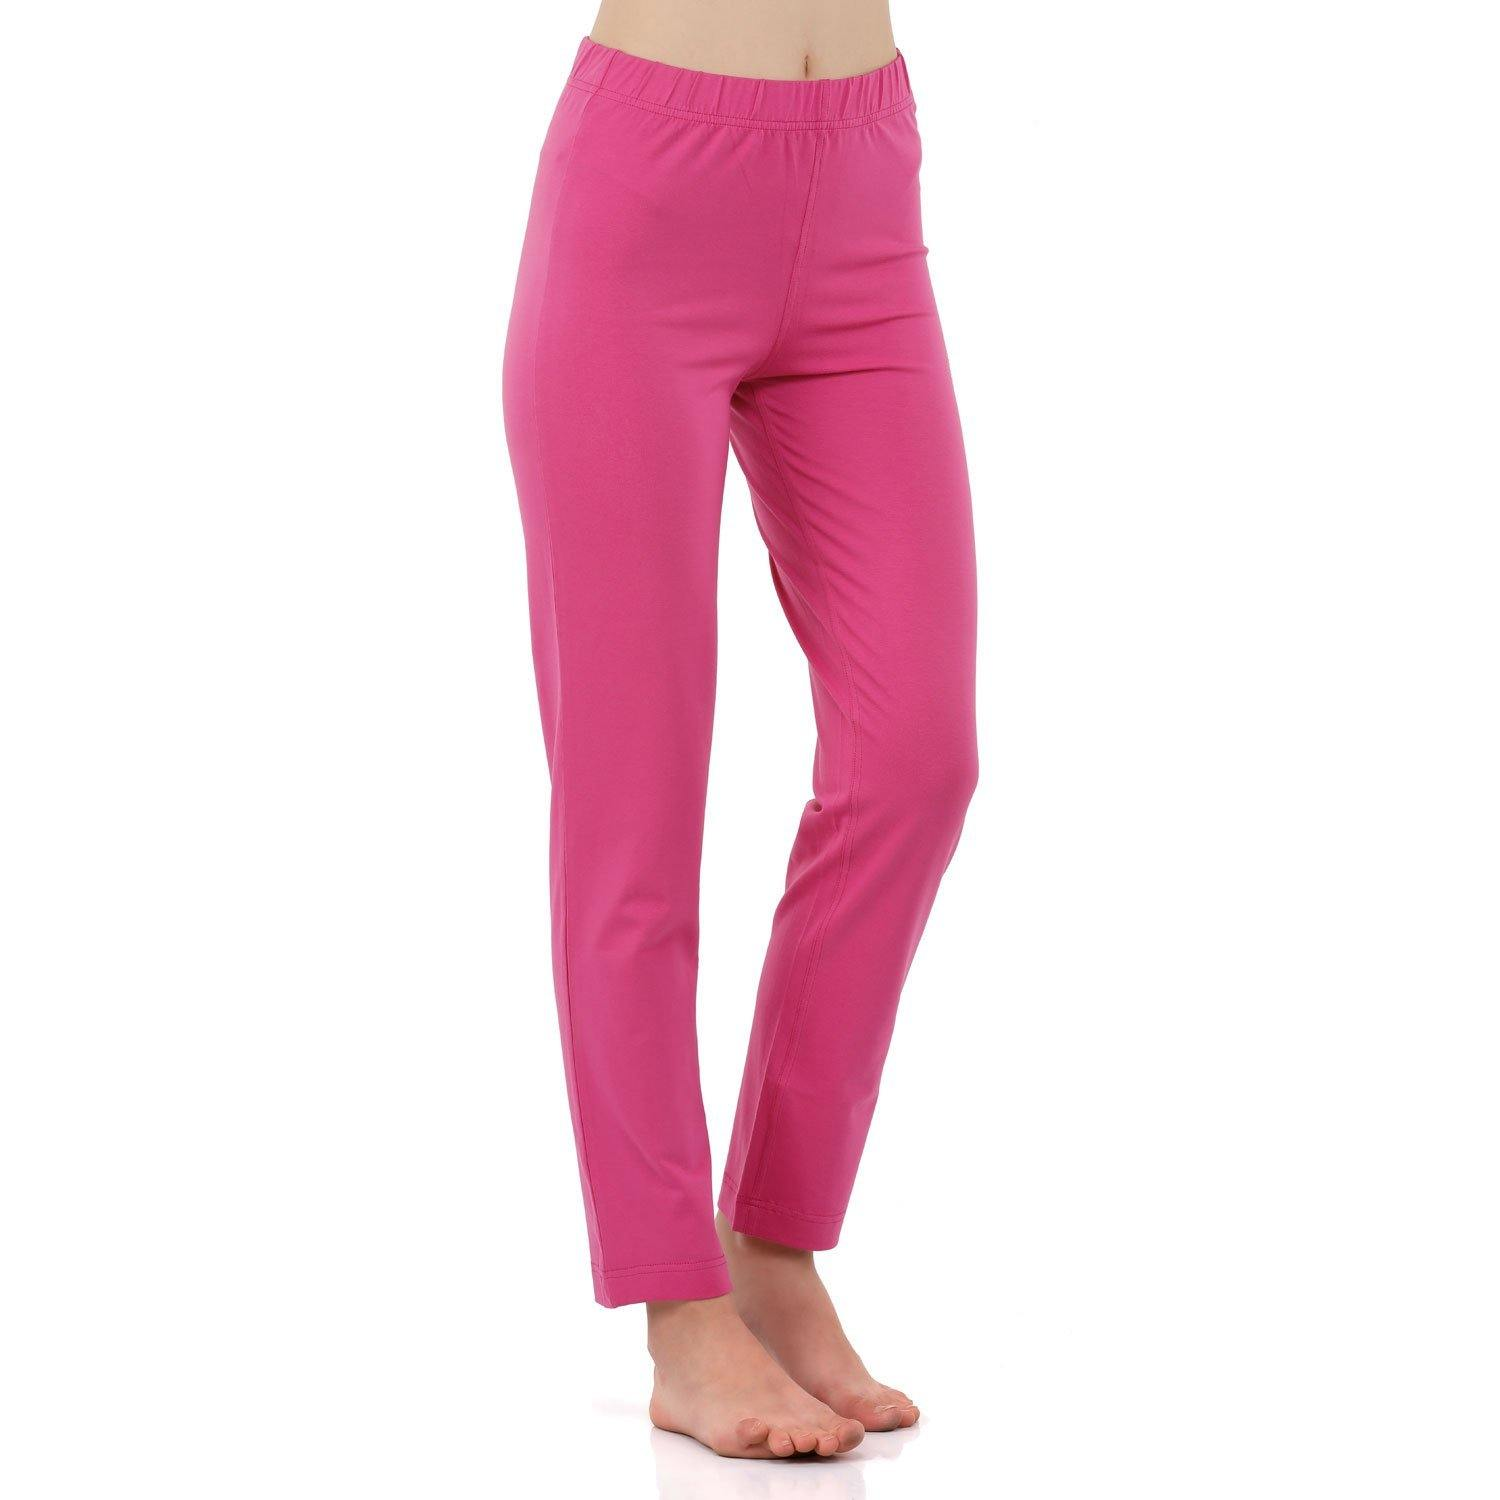 Women's Plain Knitted Lower - Pink